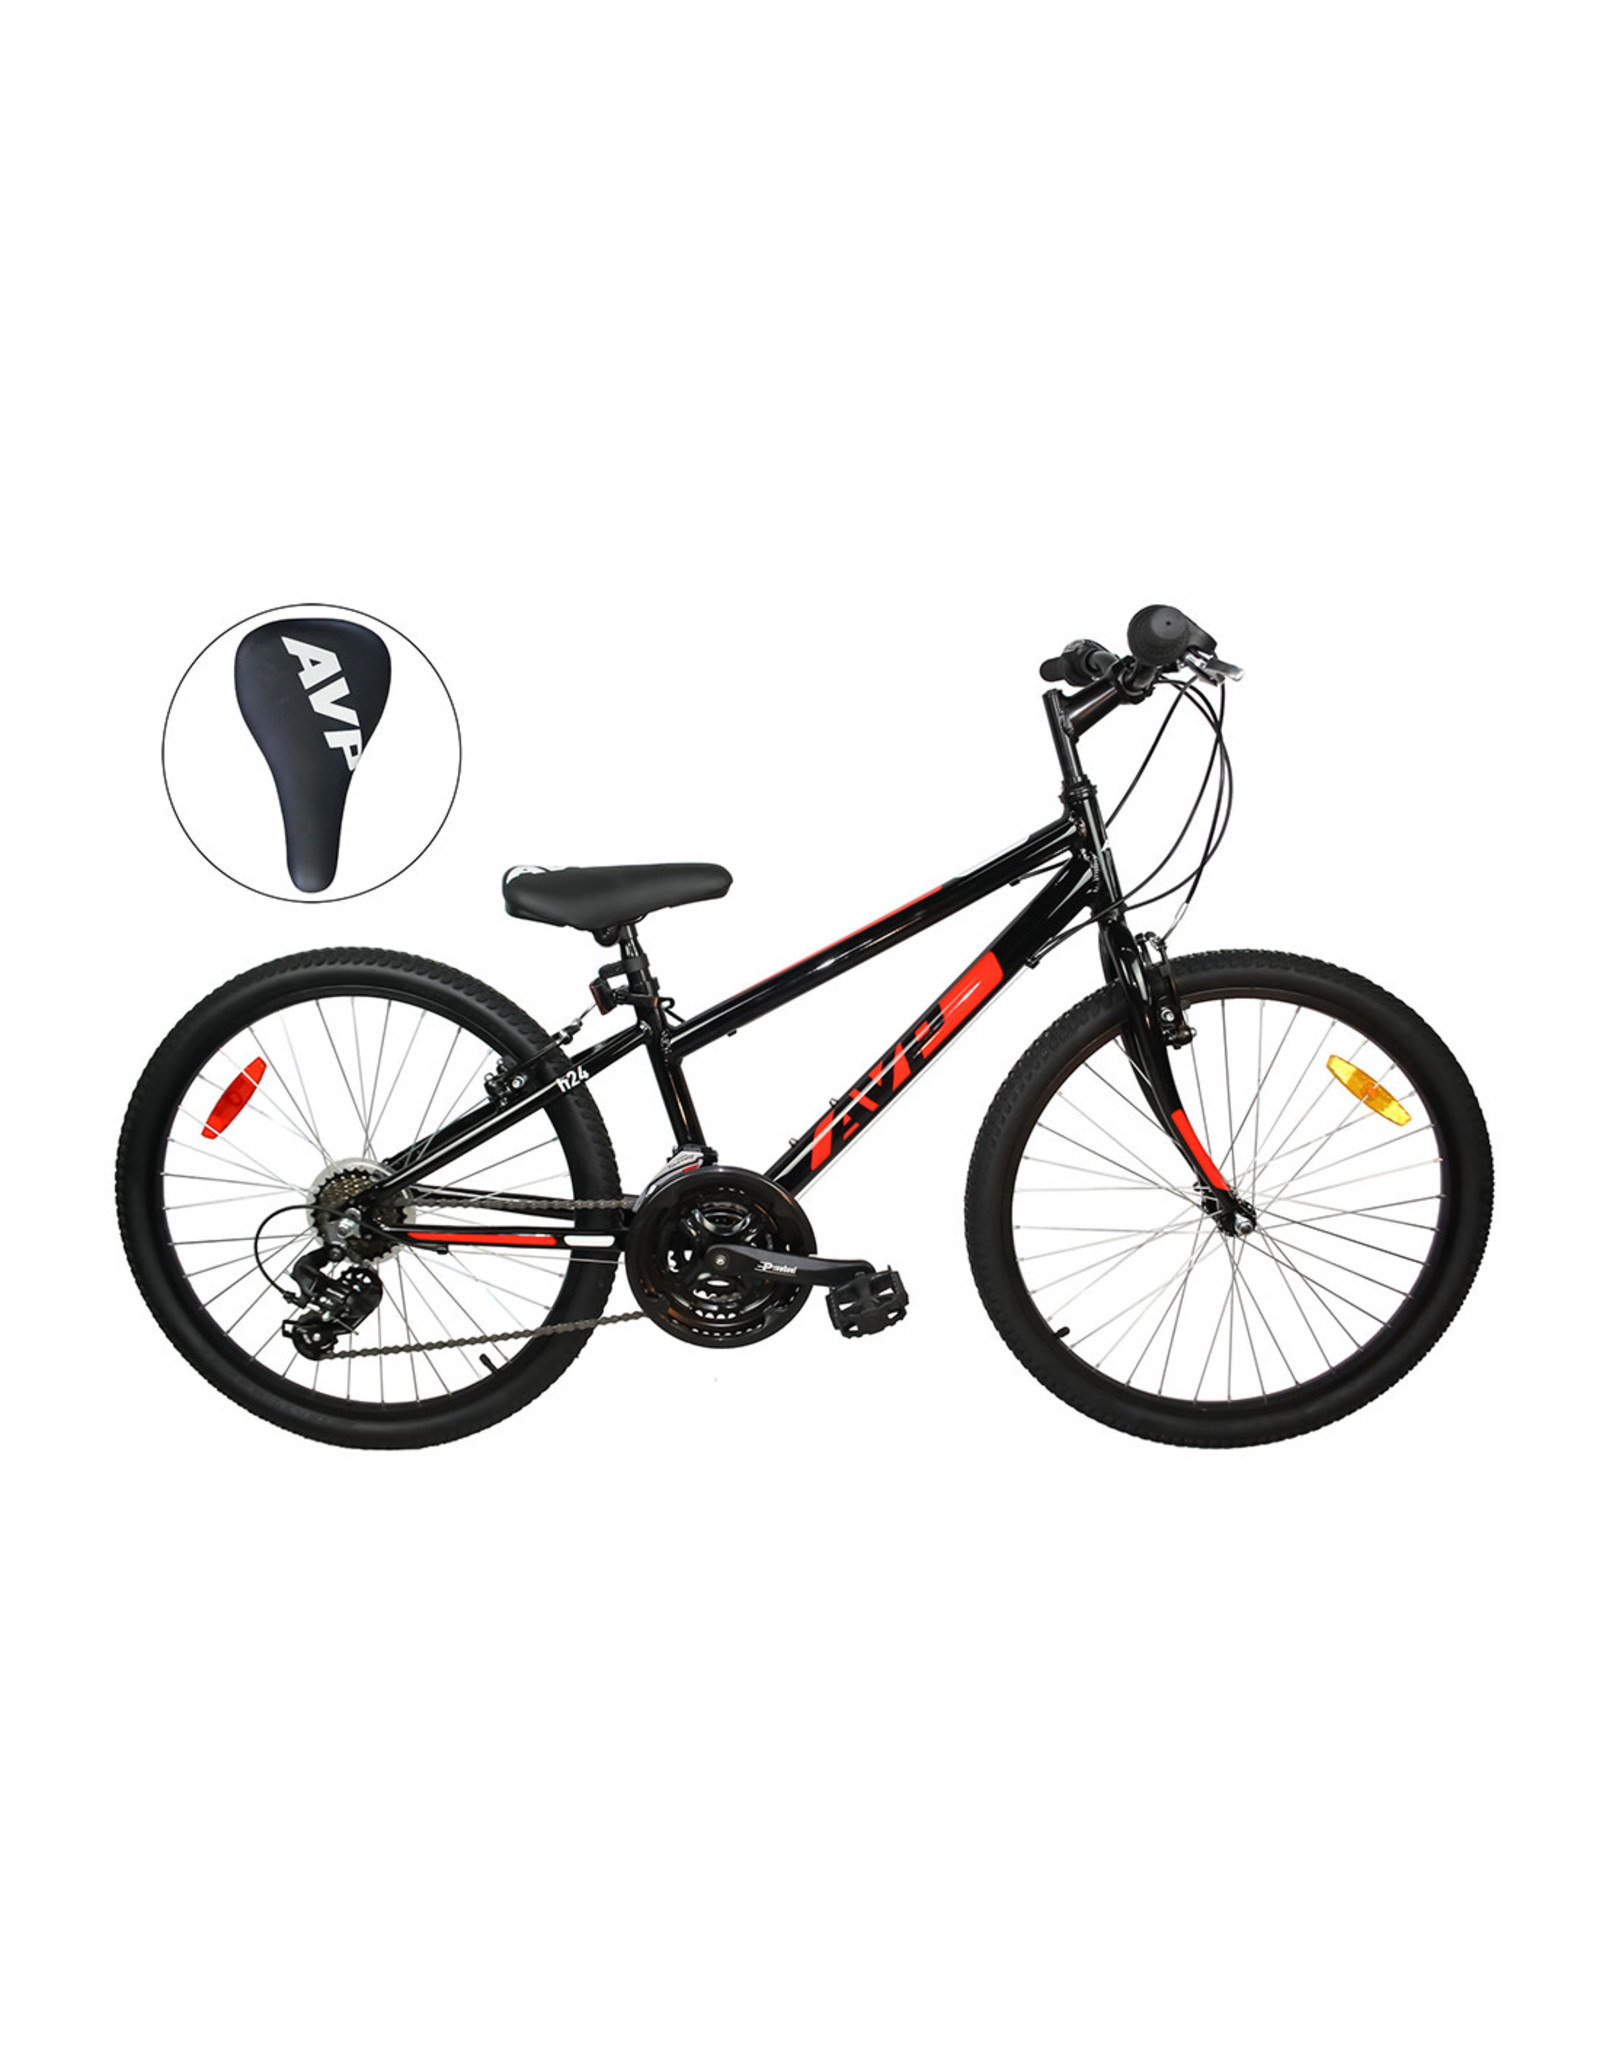 AVP H24 HYBRID BIKE BLK-RED 24 JR 21